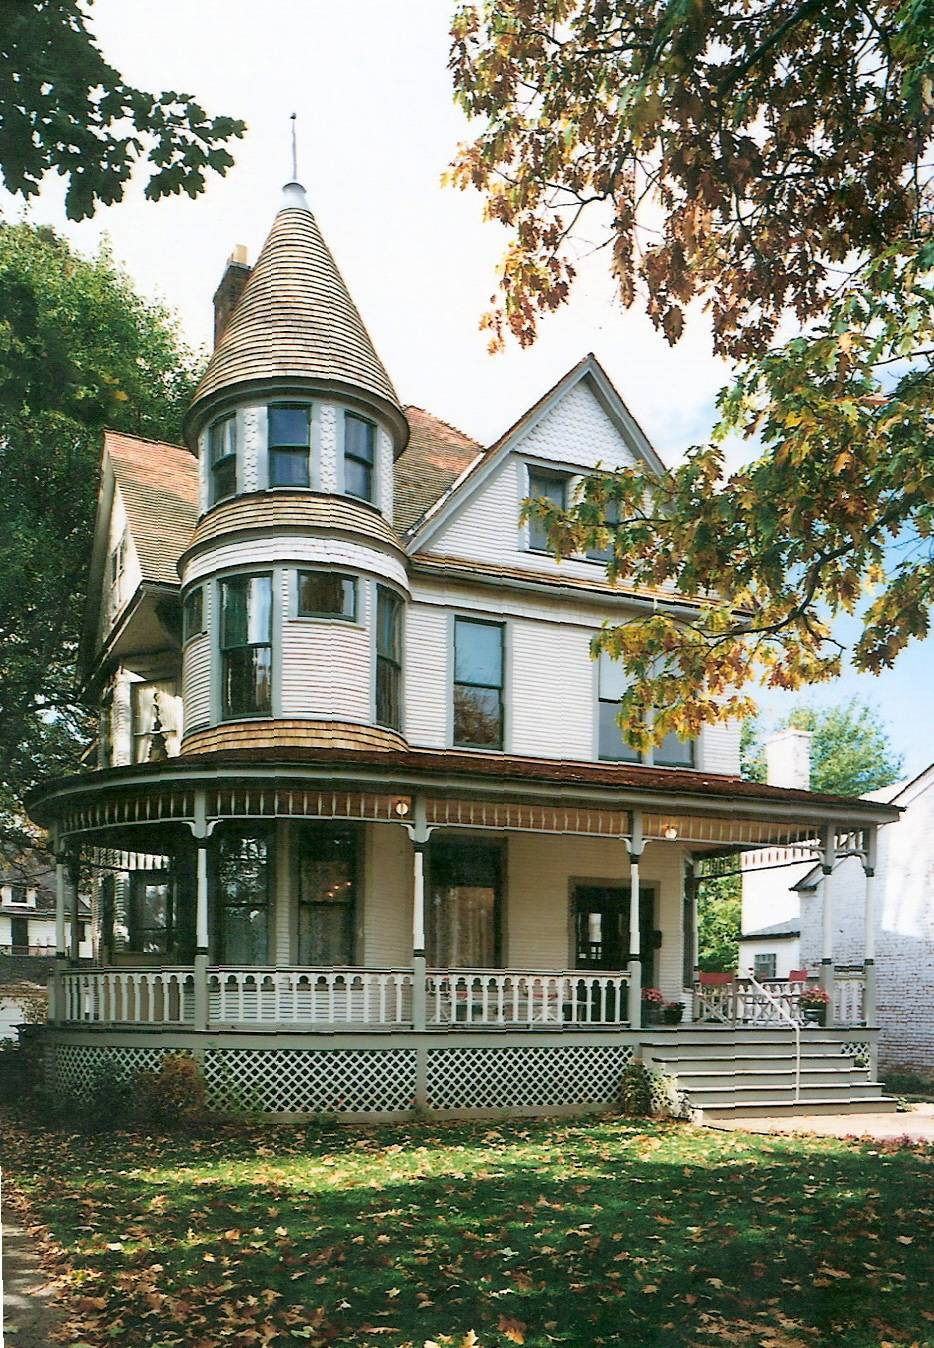 Ernest Hemingway's birthplace and Oak Park home, where the author lived as a young boy, can be visited along with a nearby museum. It's one of a number of sites Hemingway fans can visit in Florida, Idaho, Arkansas and Cuba.